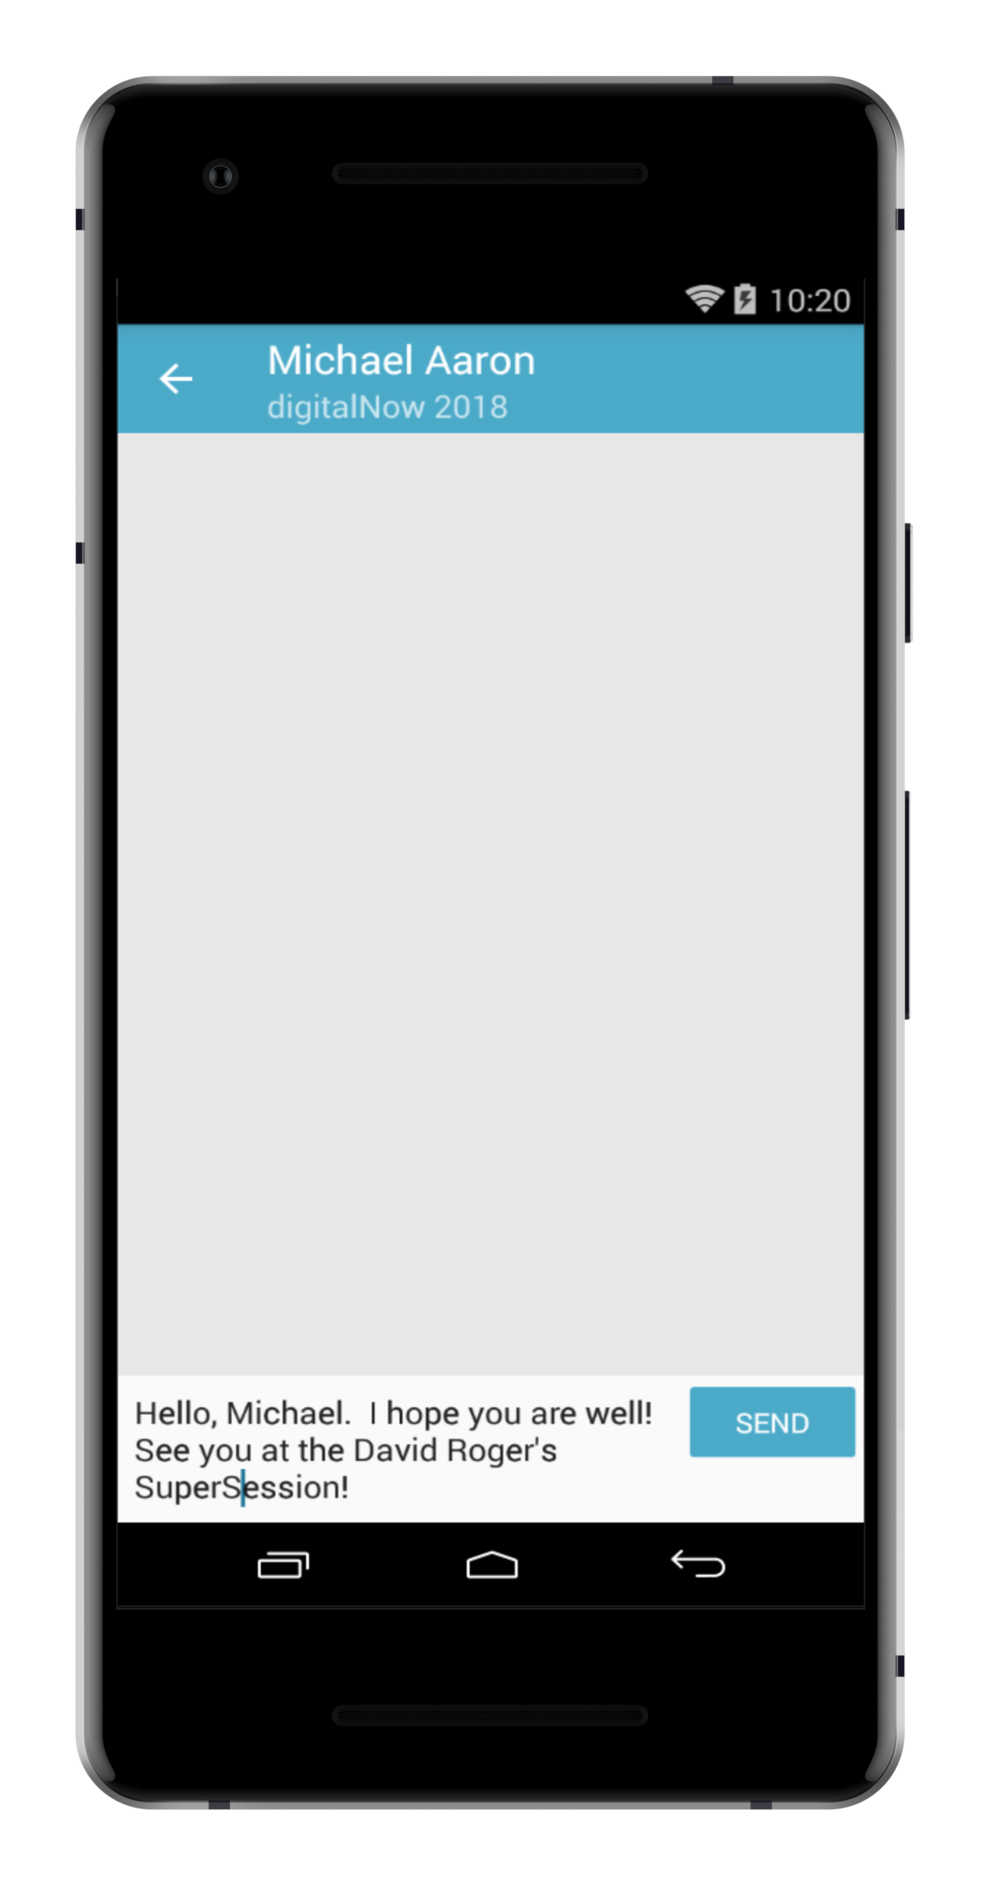 step 4. - WRITE YOUR MESSAGE AND THEN PRESS SEND.